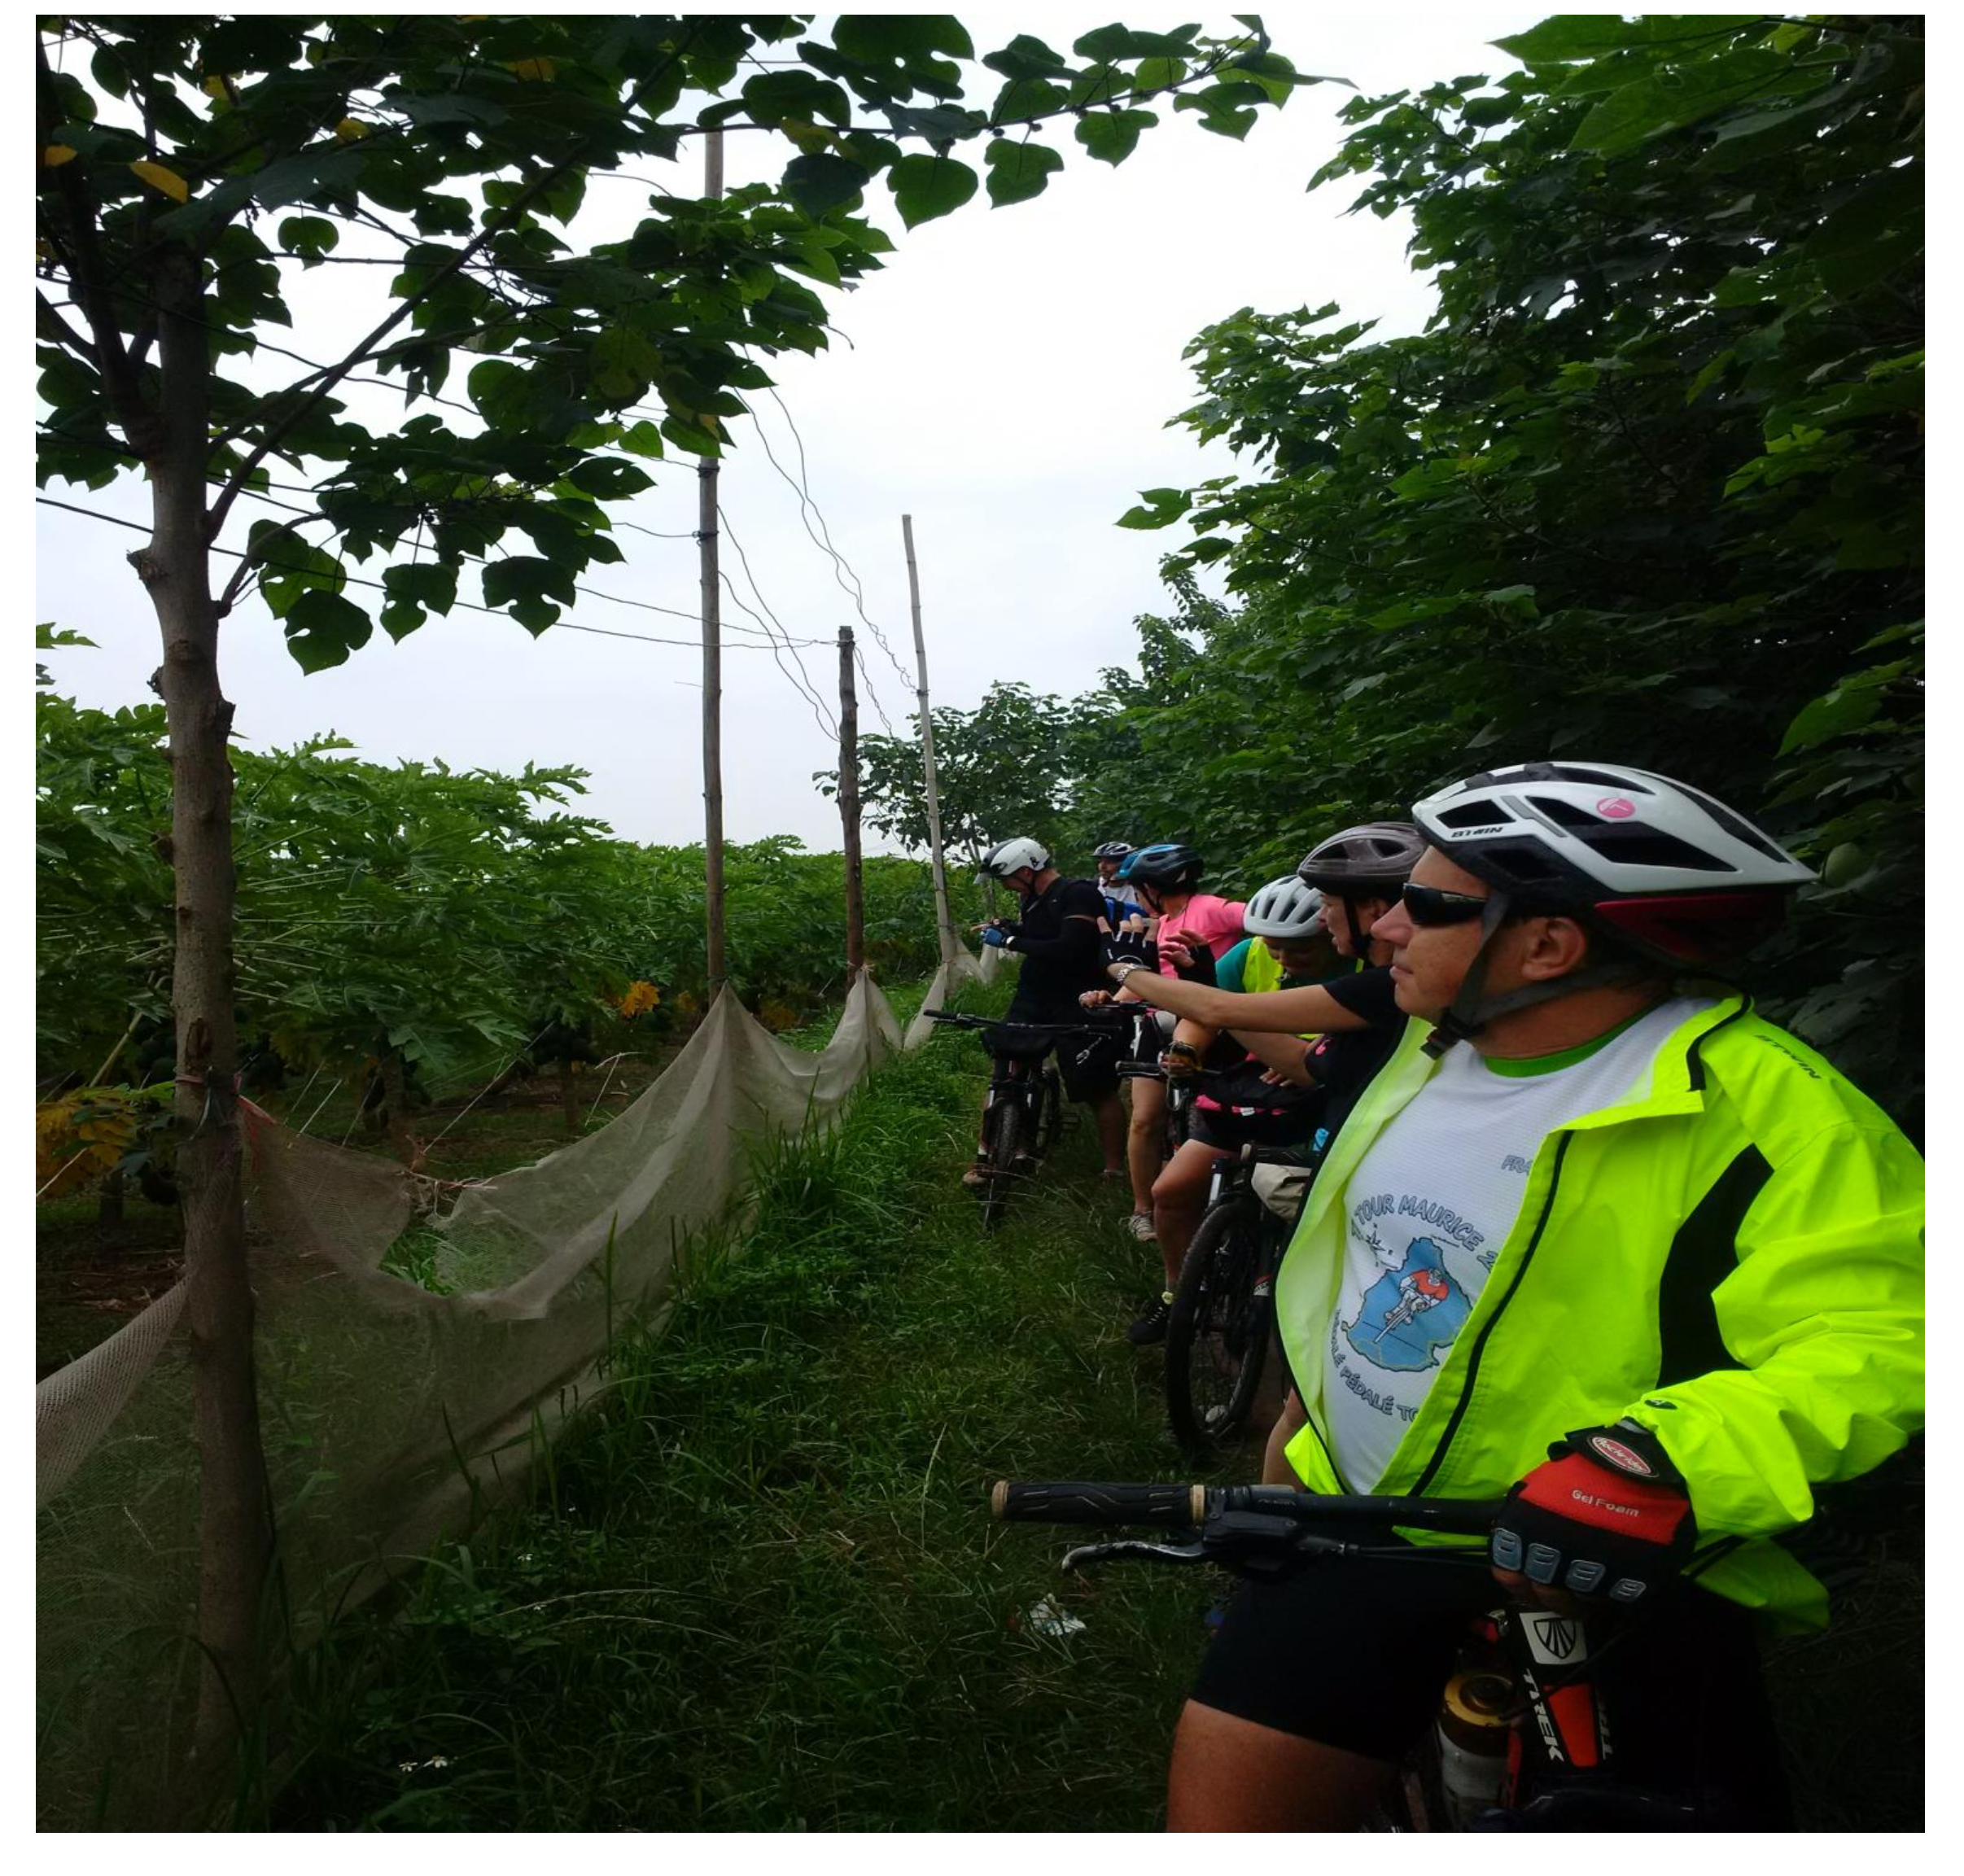 HANOI OFF THE BEATEN TRACK DUONG LAM FULL DAY CYCLING TRIP